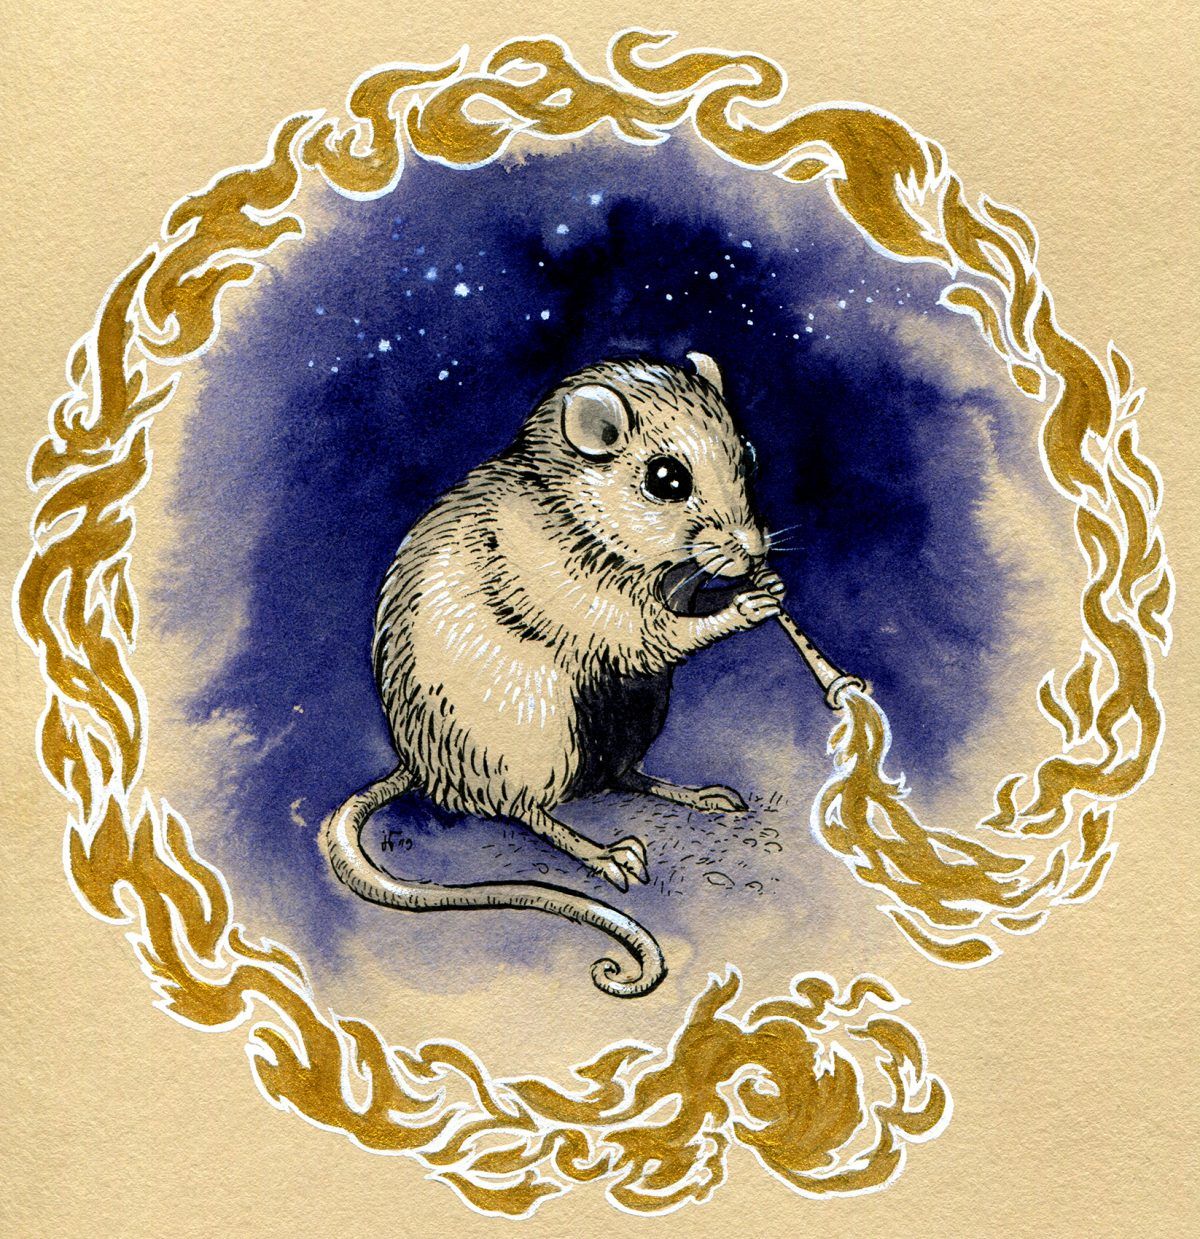 Pacific Pocket Mouse - Inktober 2019 - ink, indigo drawing ink, white gouache and golden acrylic